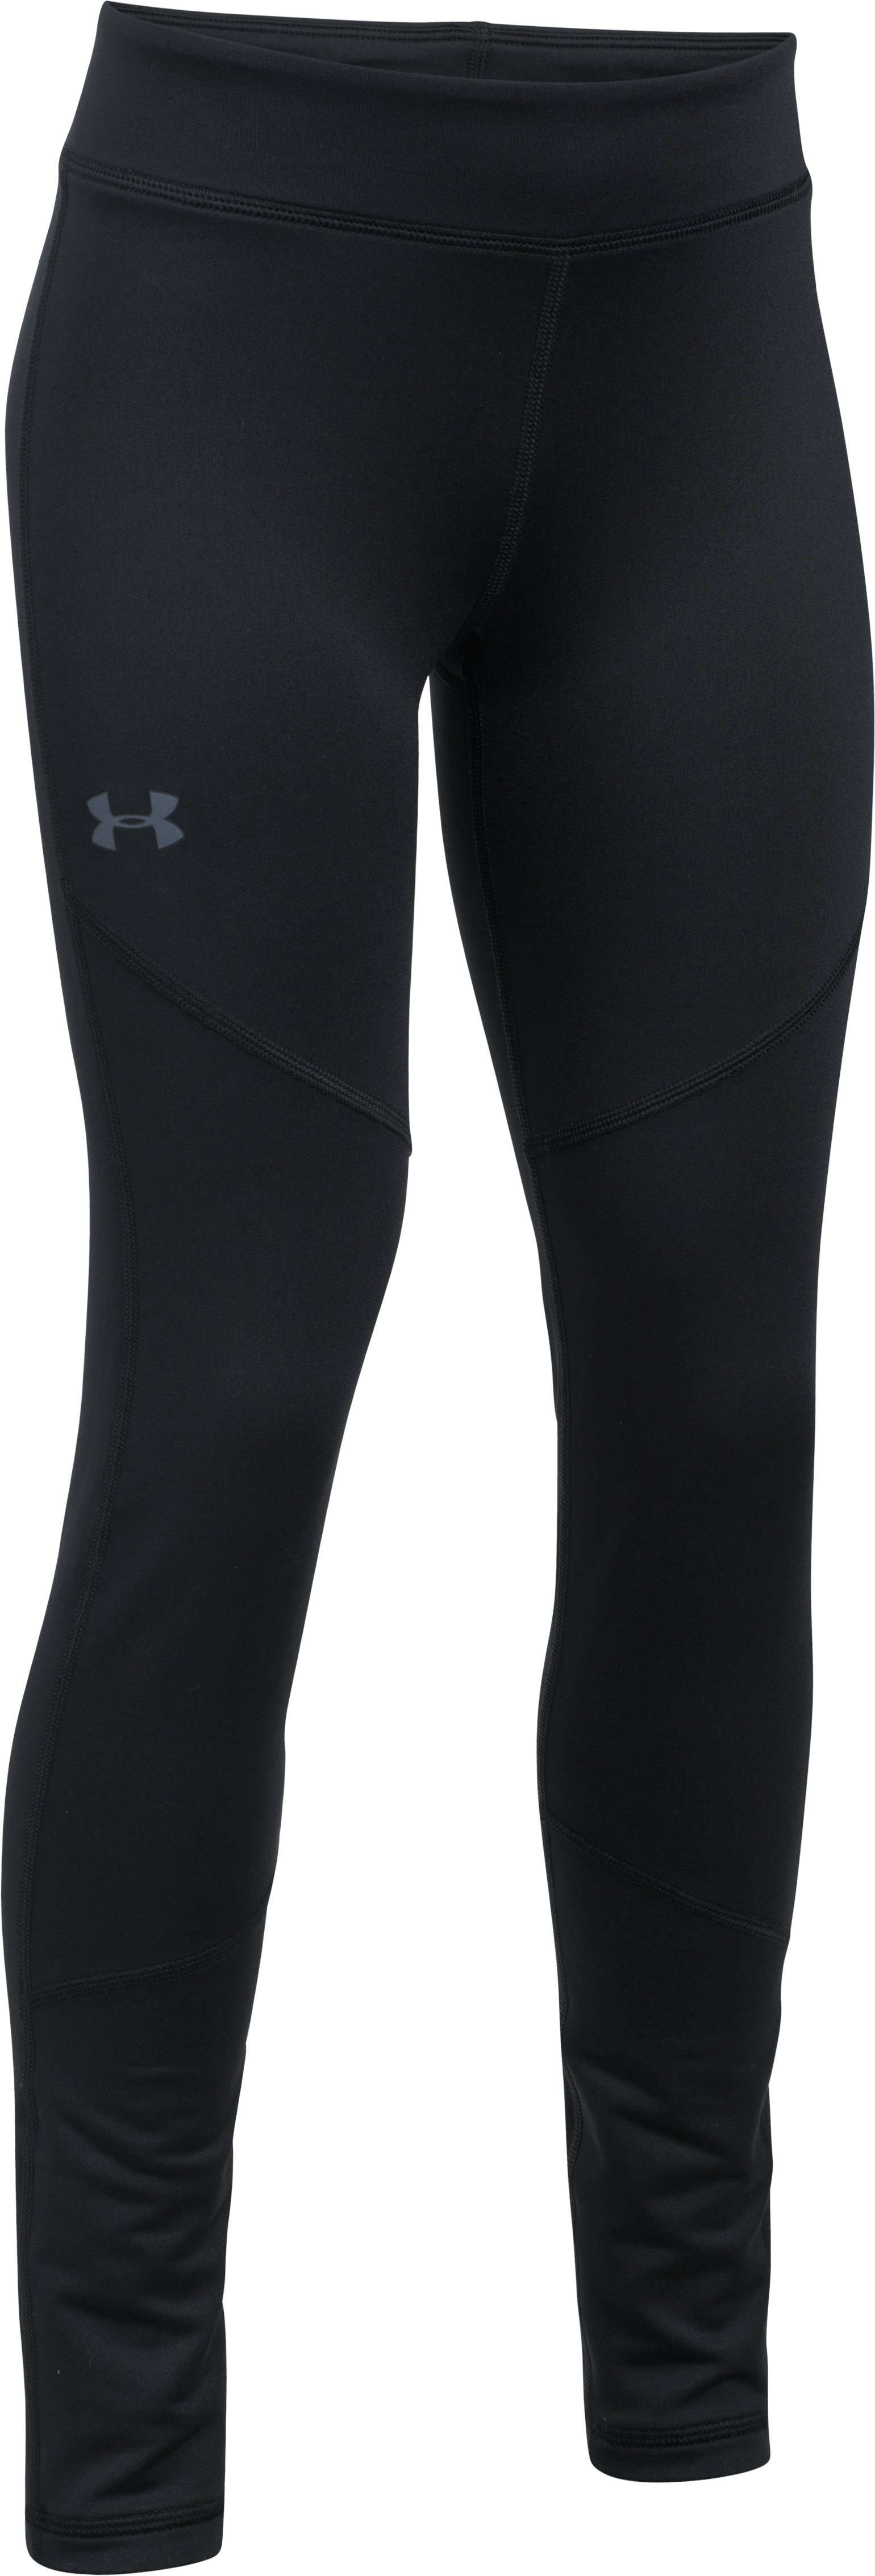 Girls' ColdGear® Leggings, Black